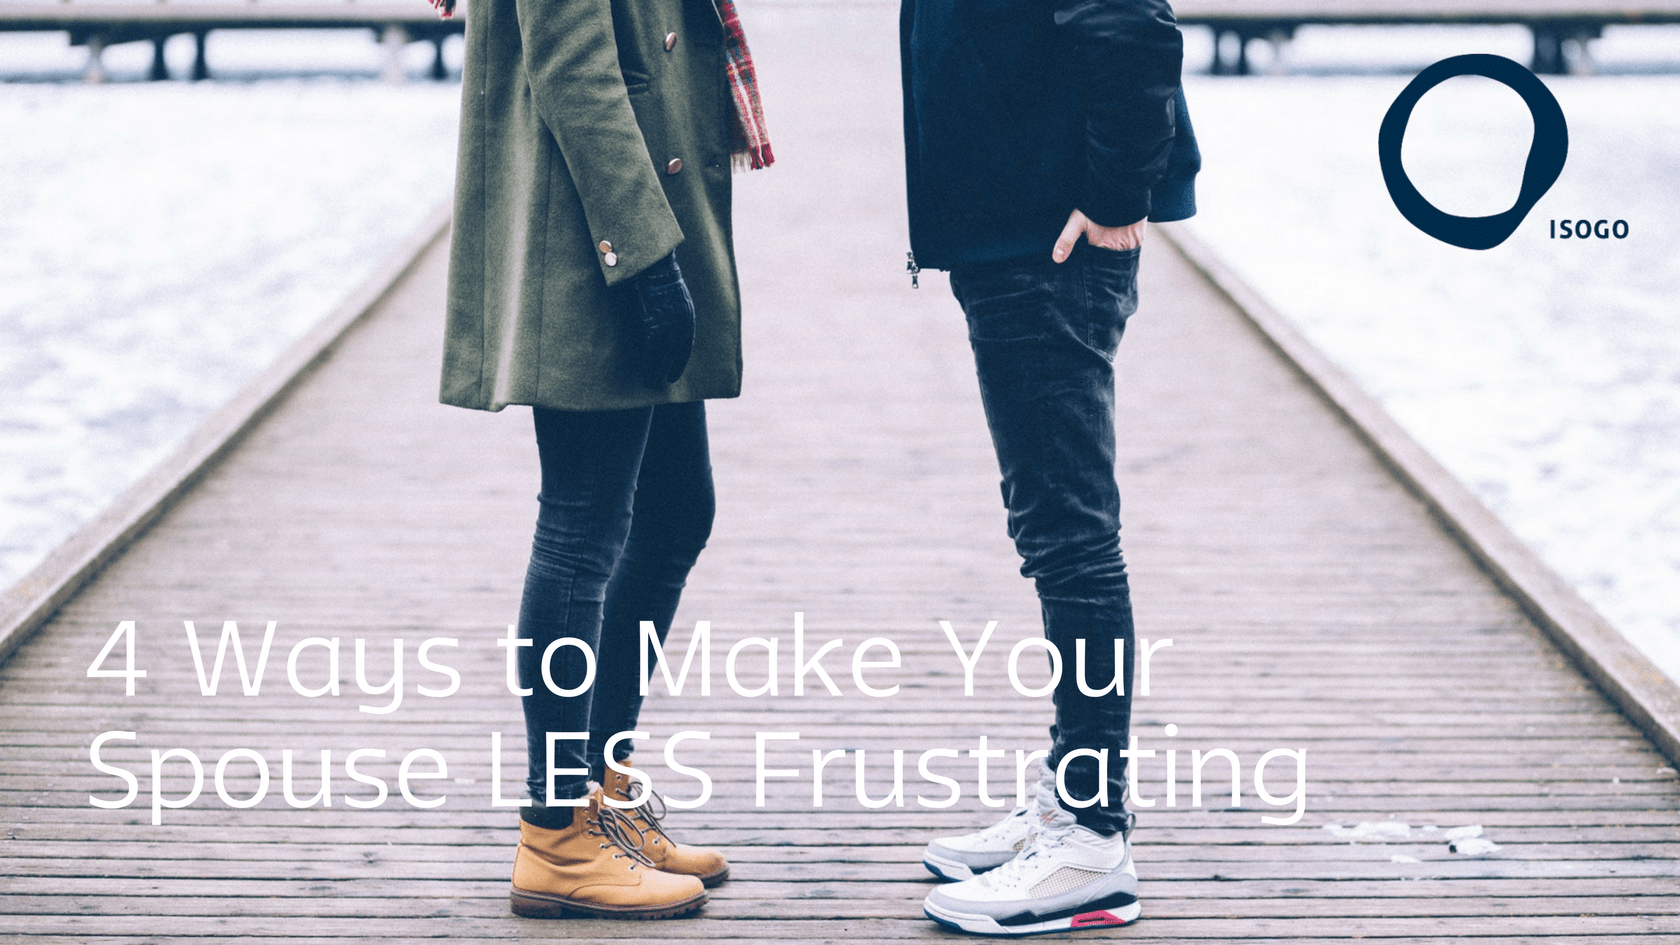 4 Ways to Make Your Spouse Less Frustrating